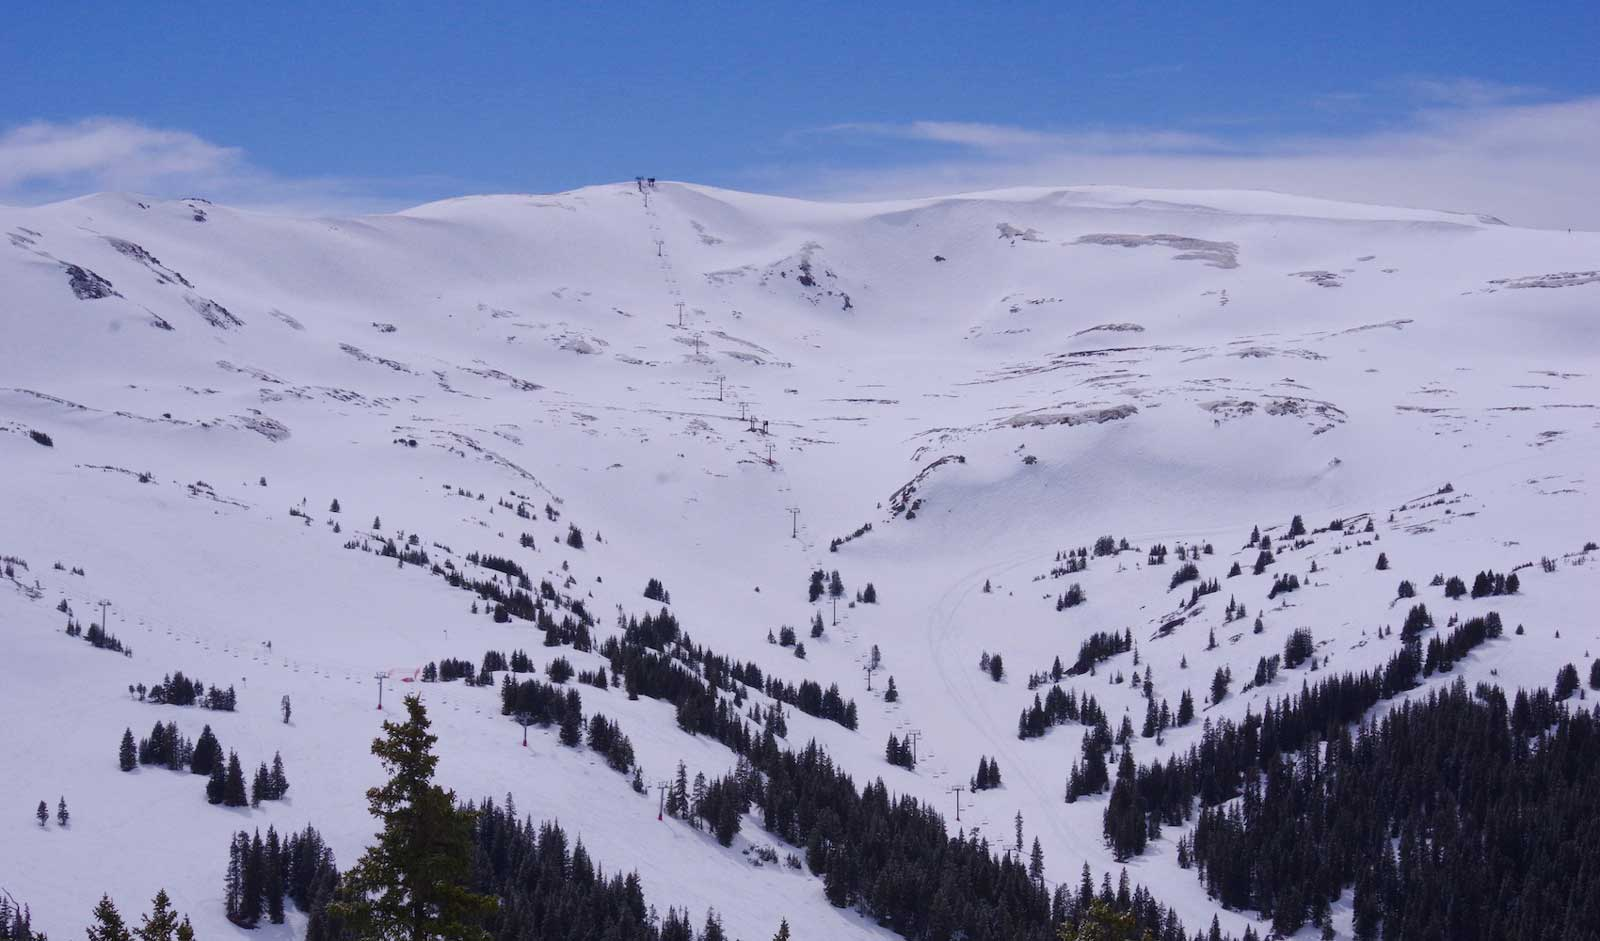 There's more to Loveland than most skiers realize.